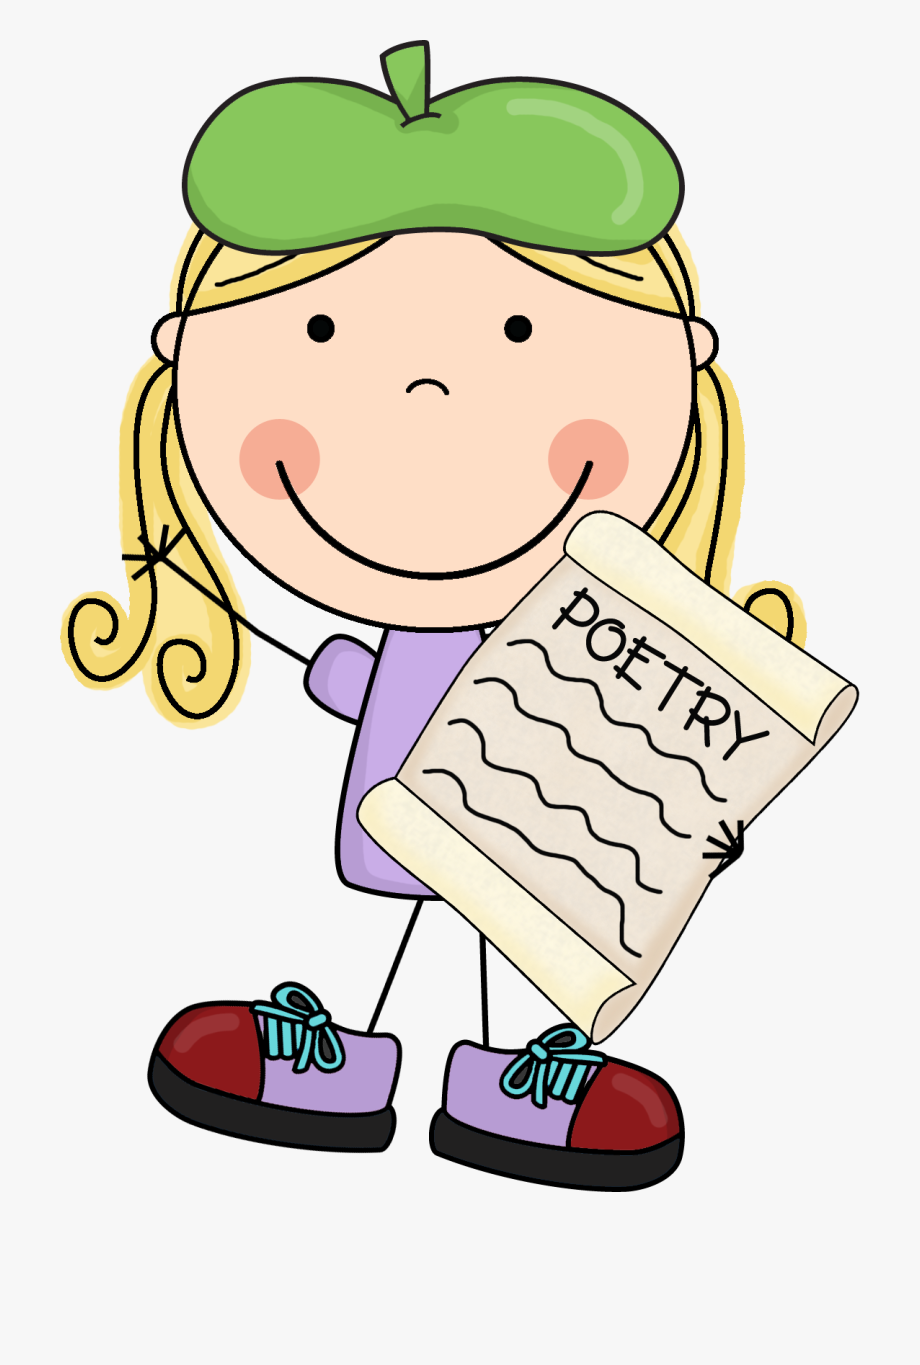 svg royalty free stock Poem clipart. Book poetry transparent cartoon